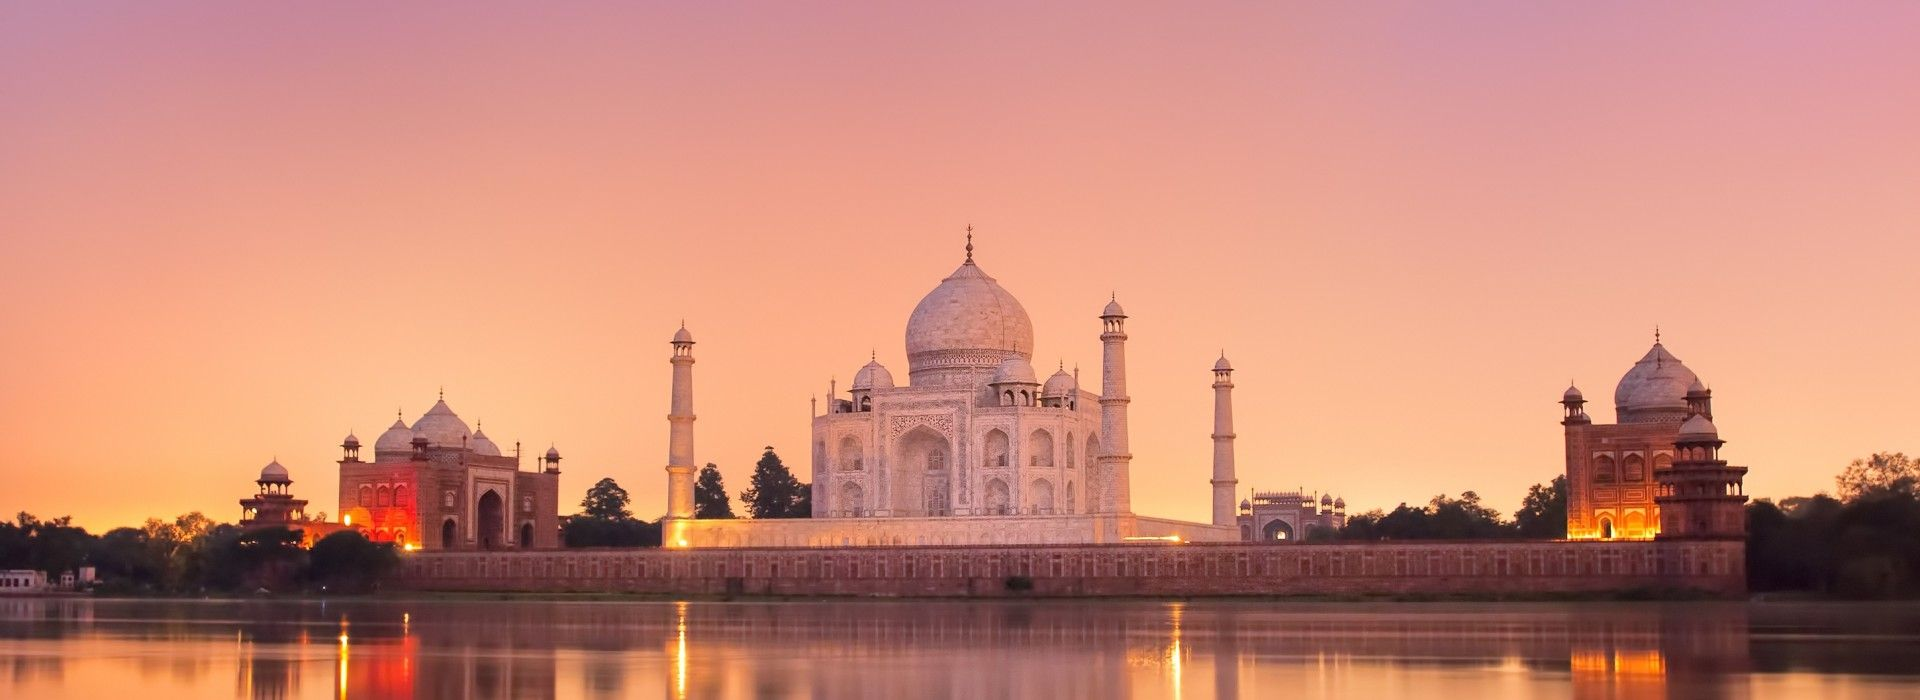 Culture shows and excursions Tours in Delhi & Golden Triangle